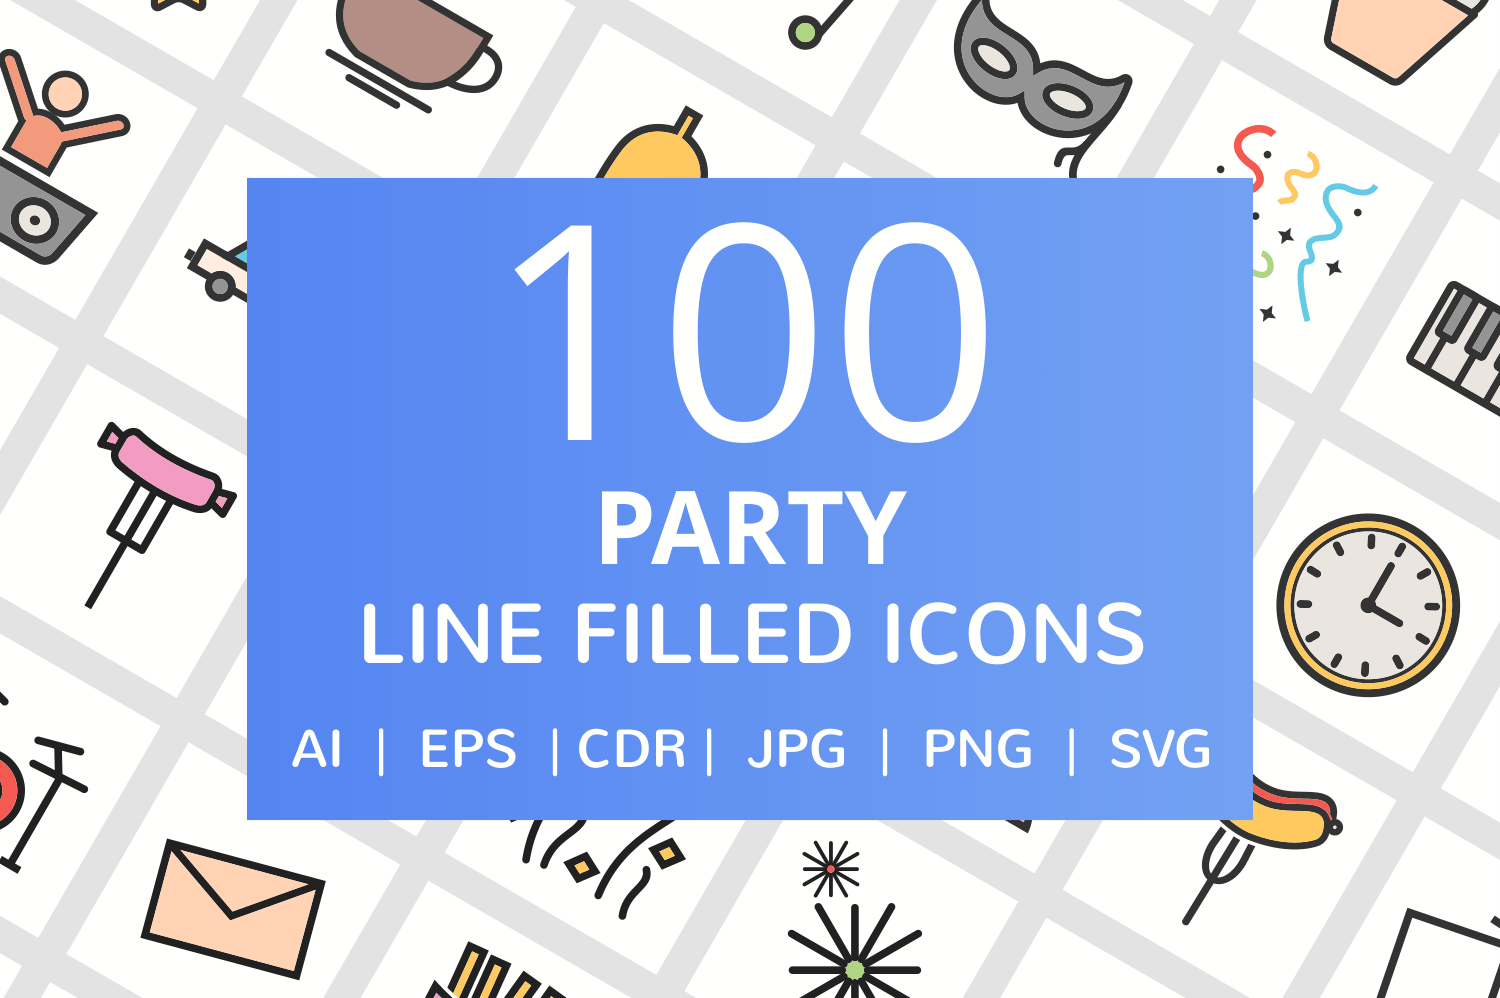 100 Party Filled Line Icons example image 1